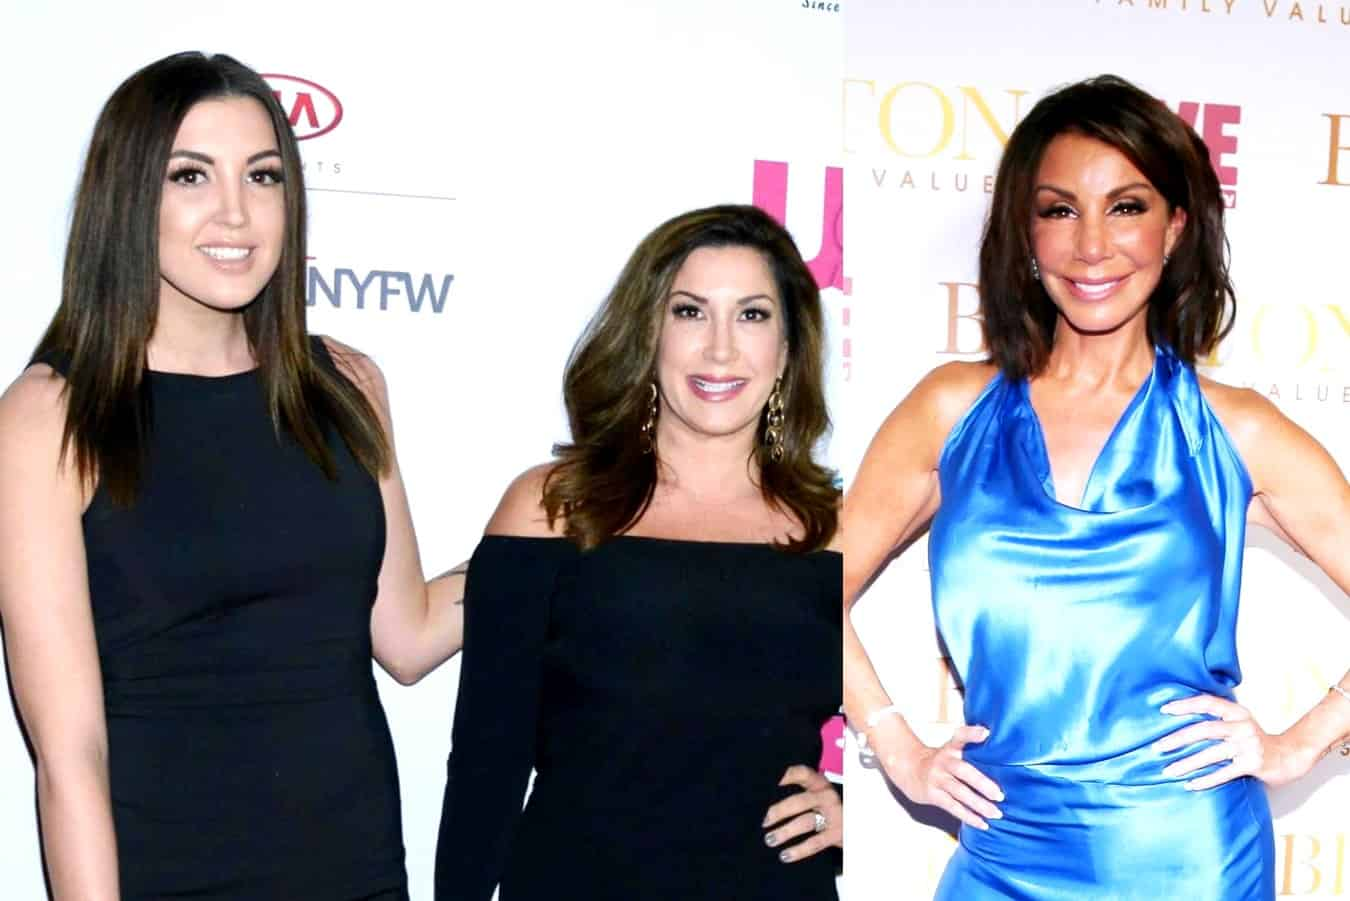 RHONJ's Ashlee Holmes Slams Danielle Staub After Danielle Claims Ashlee Left Her with 3 Herniated Disks After Season 2 Altercation, Plus Danielle Calls Out Jacqueline and Responds to Hypocrisy Claims